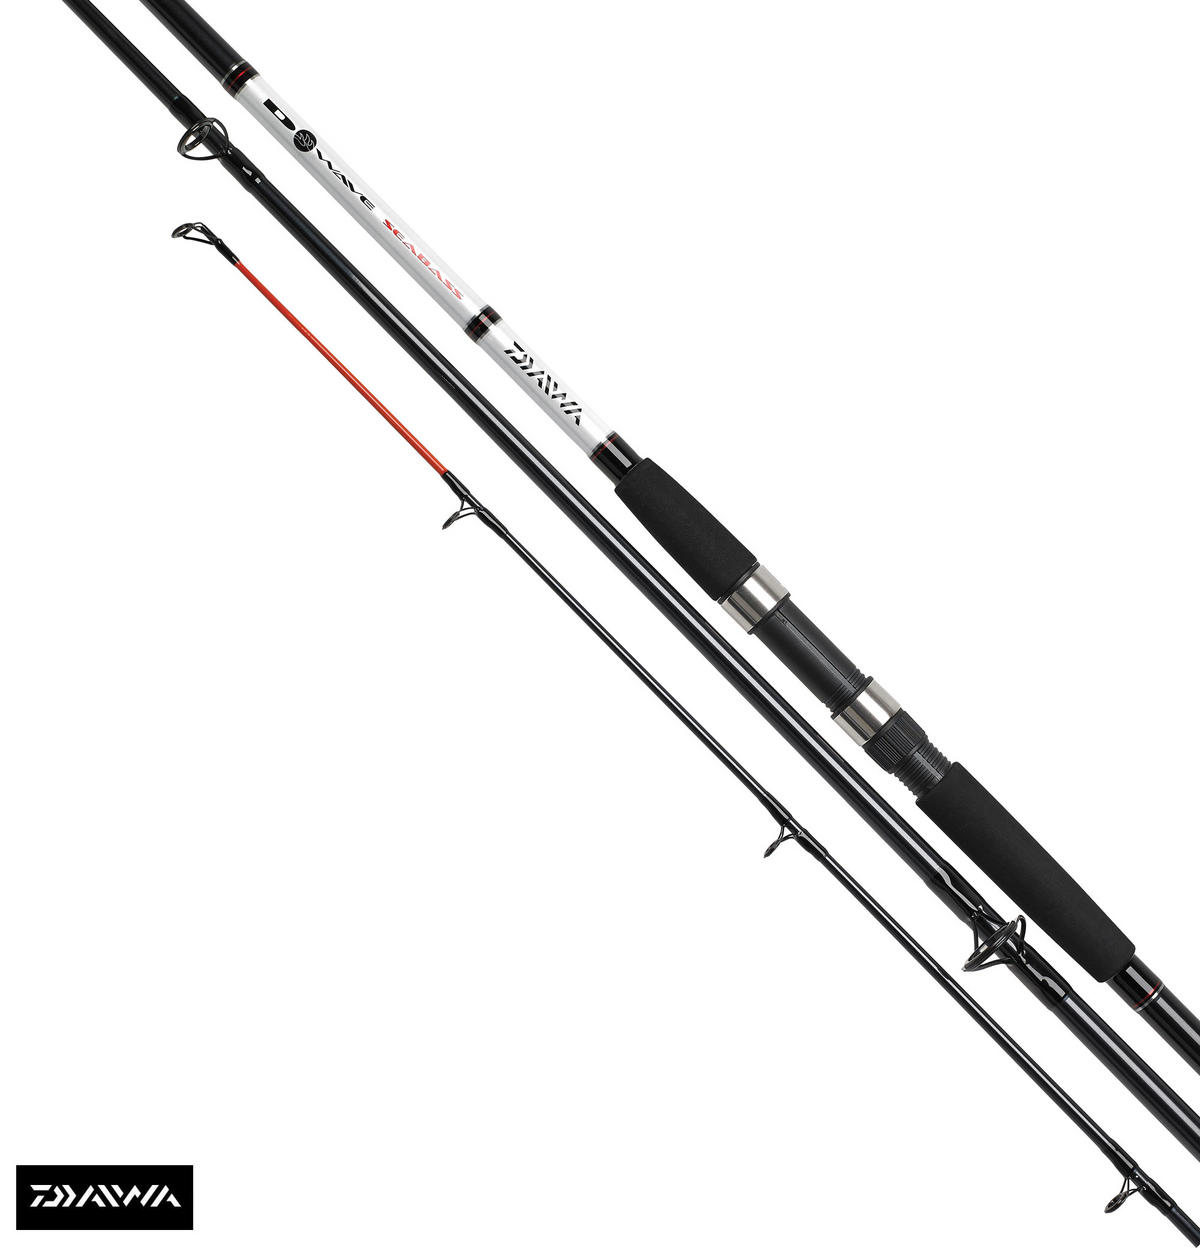 New Daiwa D Wave Seabass 11ft 3pc 2-4oz Fishing Rod Model No. DWSB1103